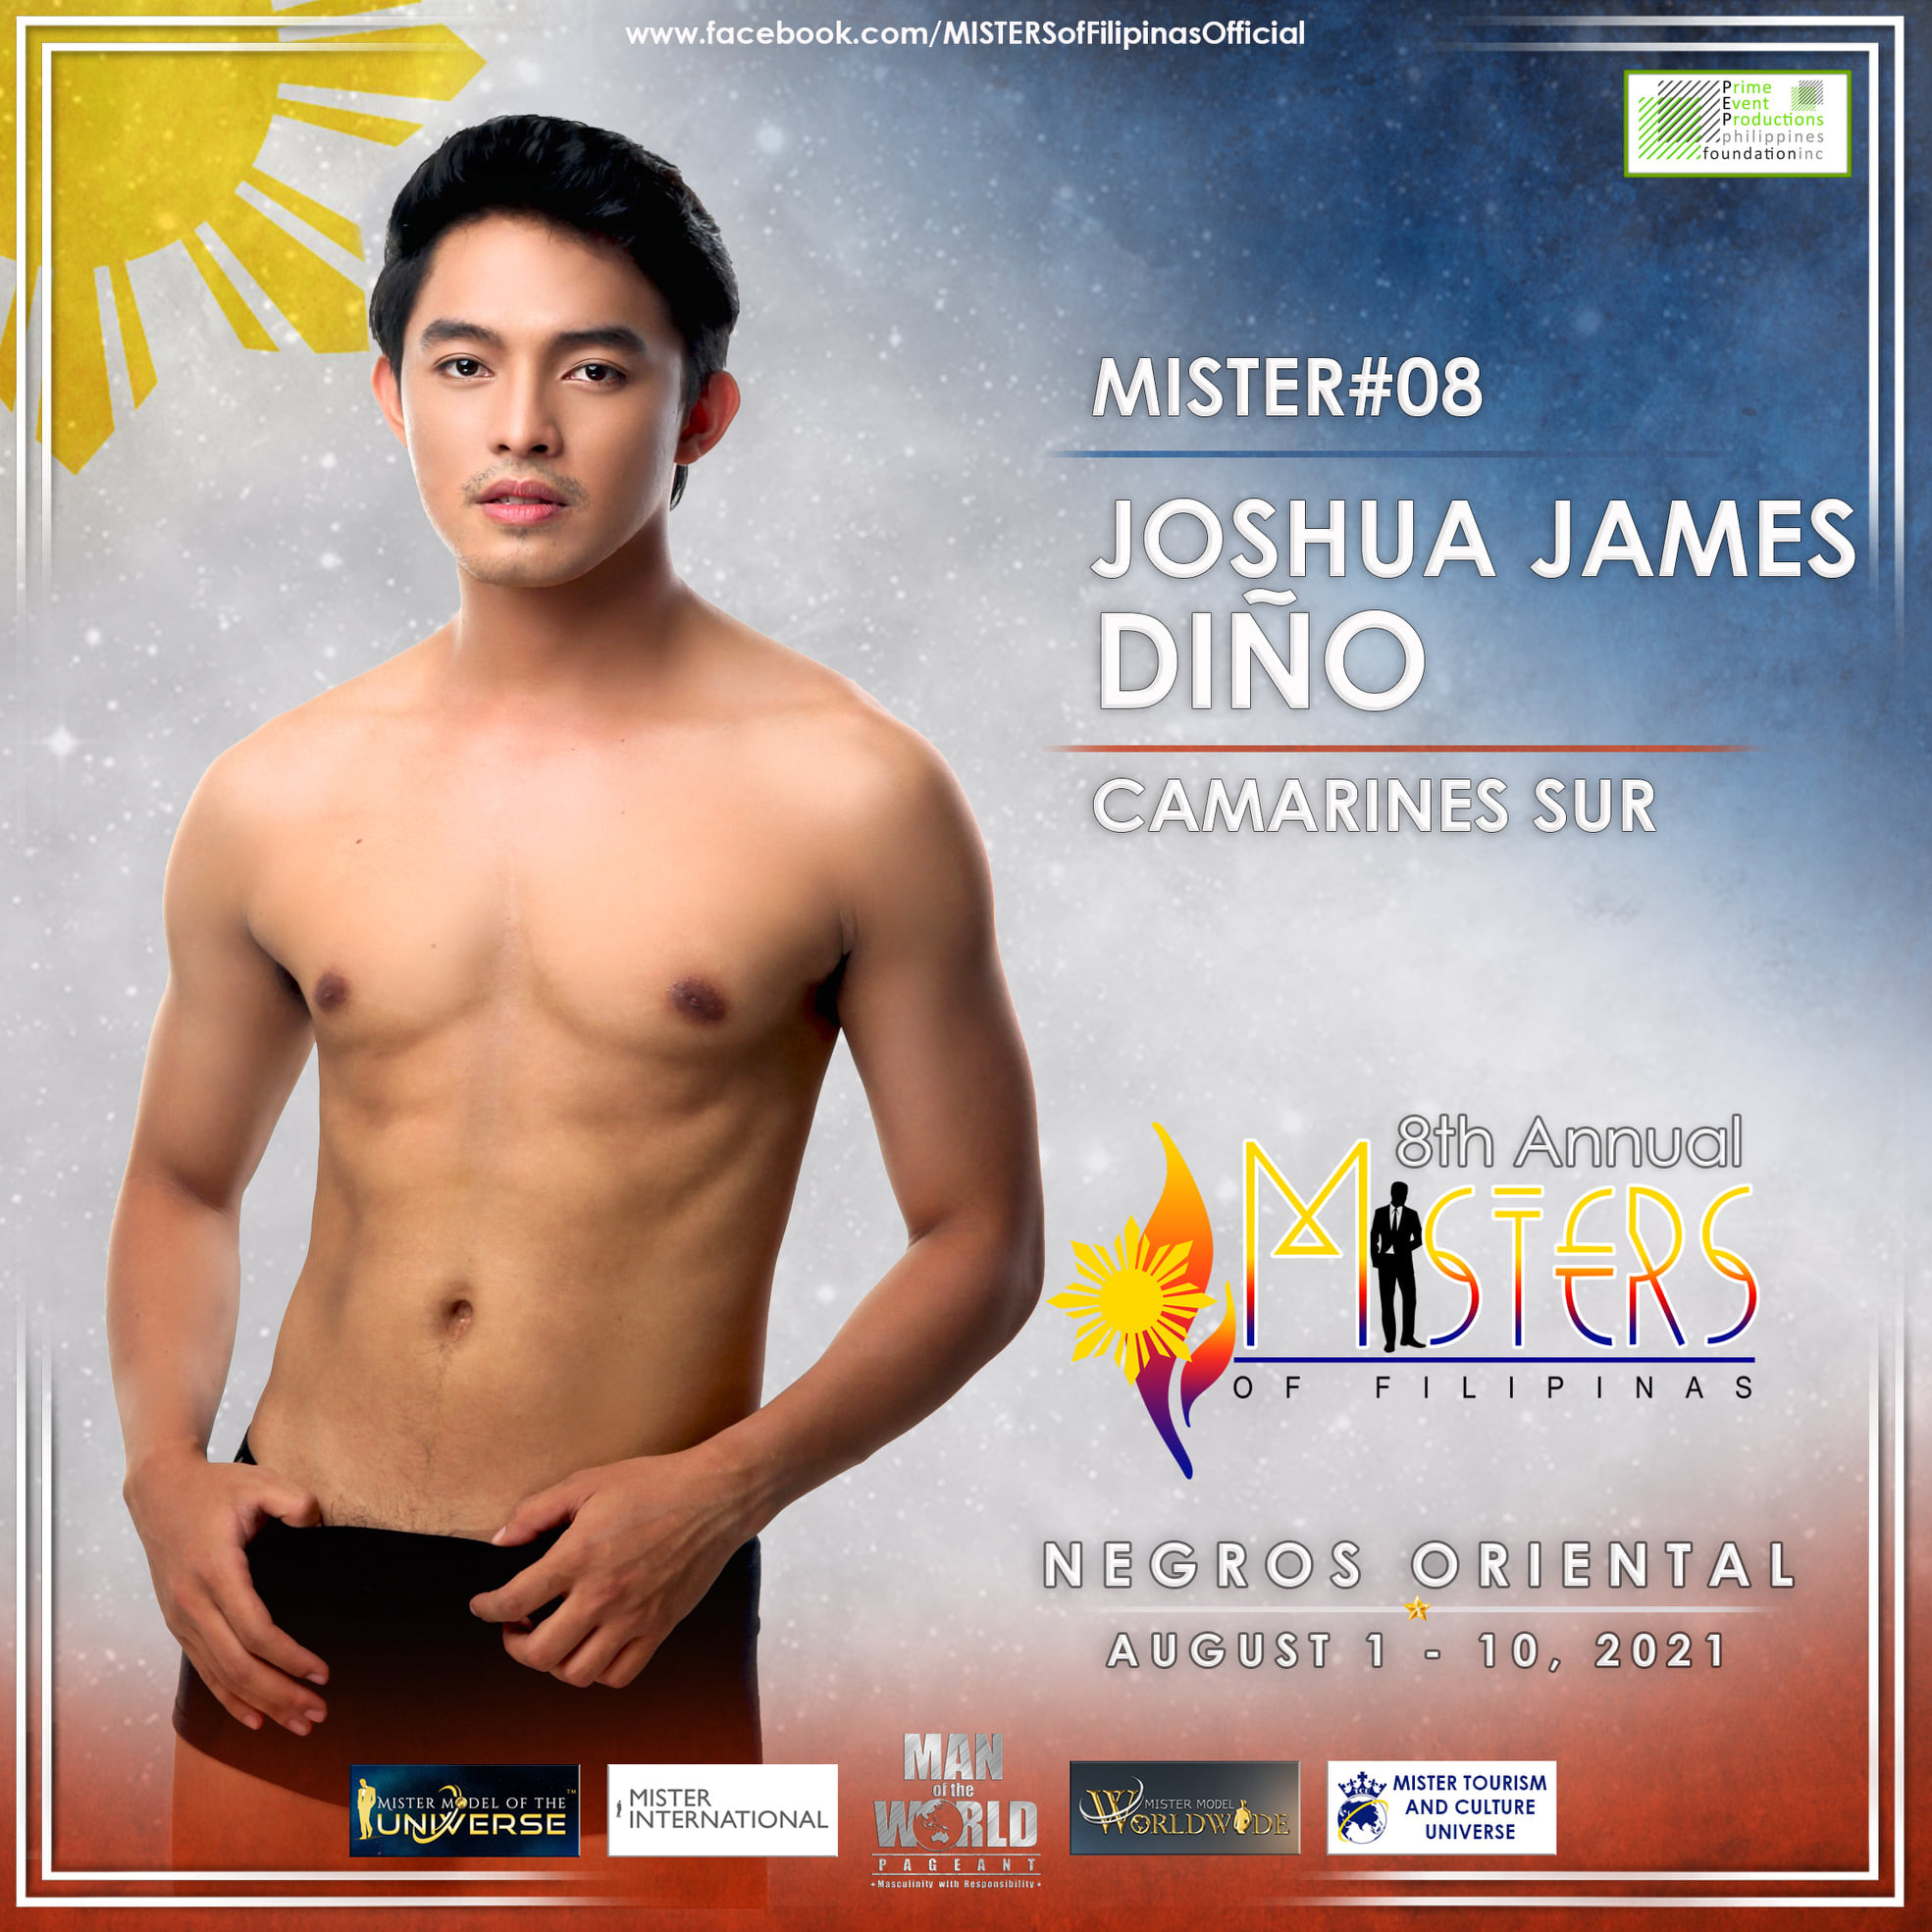 candidatos a misters of filipinas 2021. final: 27 agosto. OwqjFS